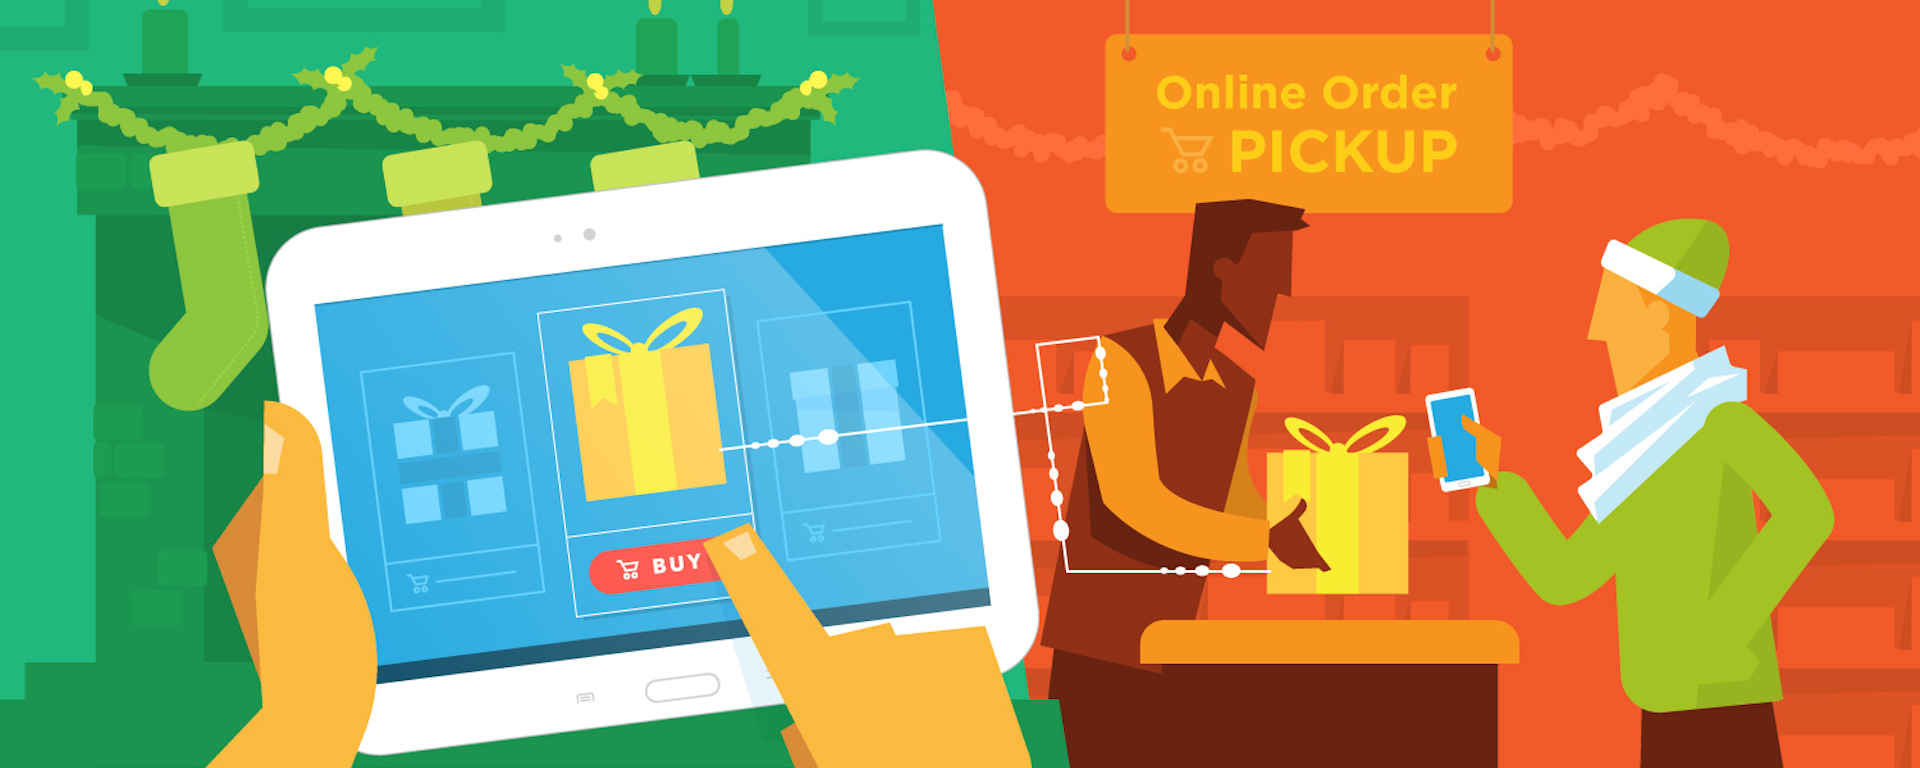 This year's holiday shopping trends are heavily influenced by technology.